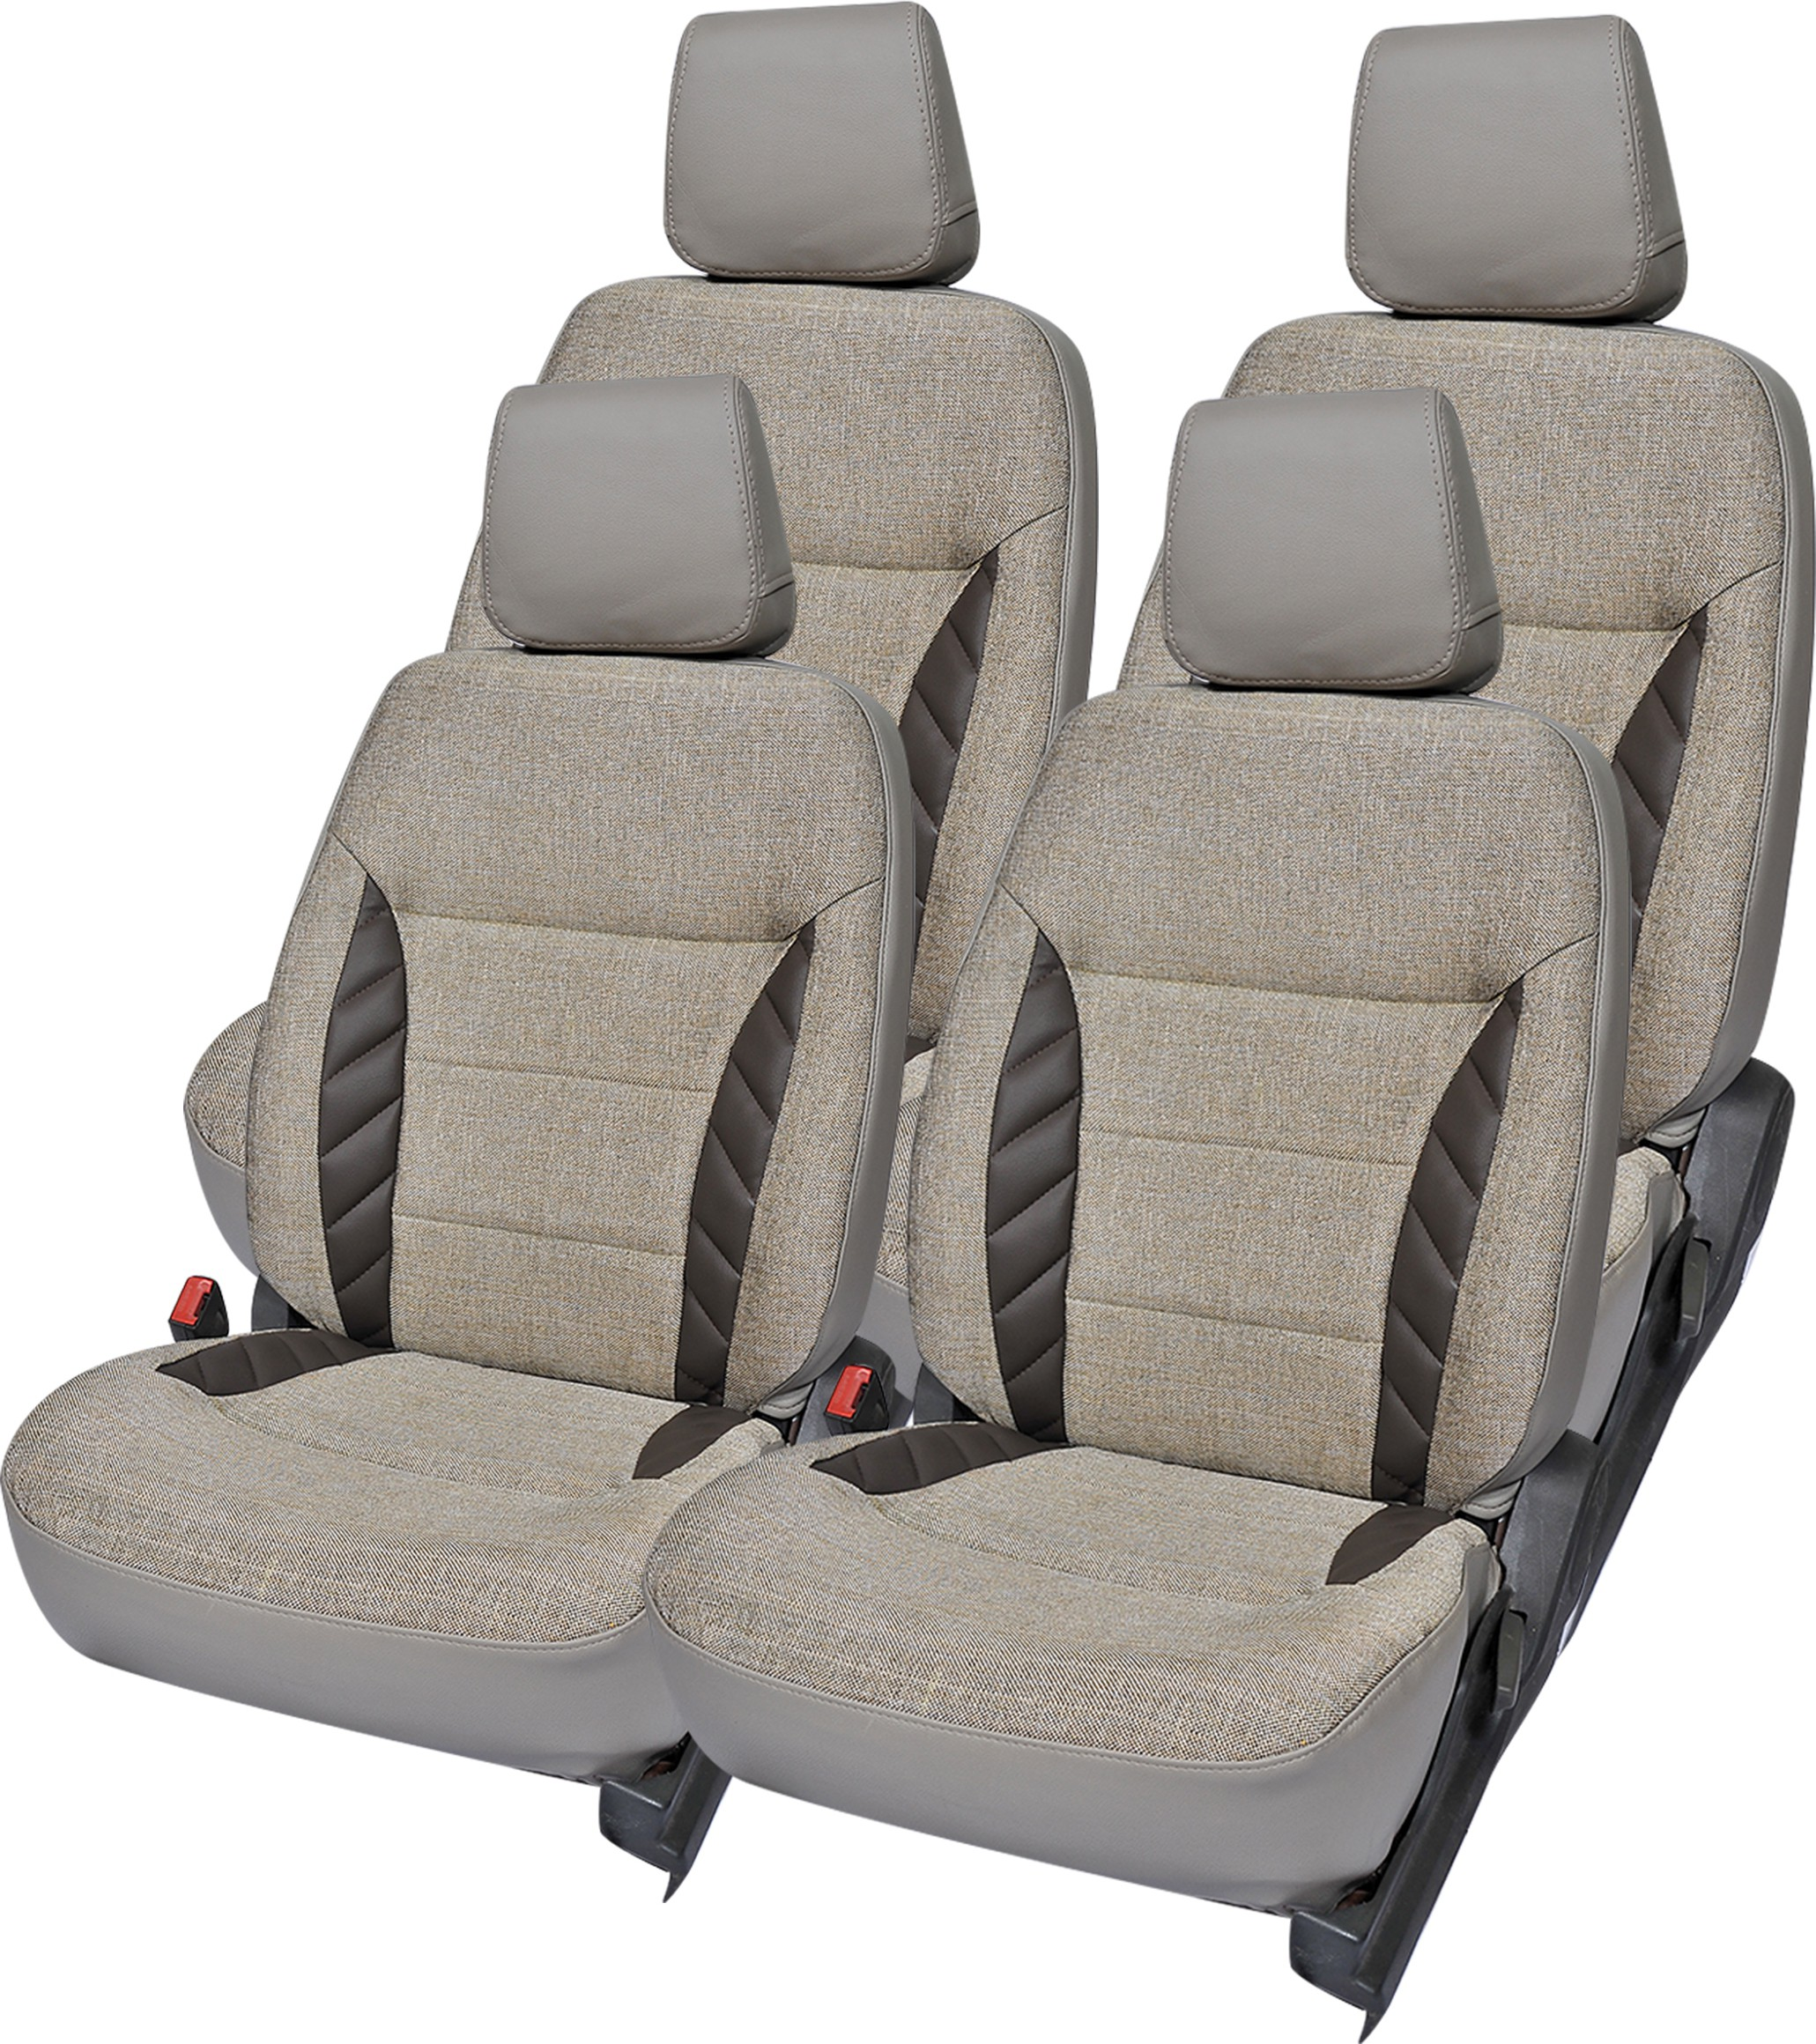 gaadikart rd 78 car seat cover for renault duster price in india buy gaadikart rd 78 car seat. Black Bedroom Furniture Sets. Home Design Ideas